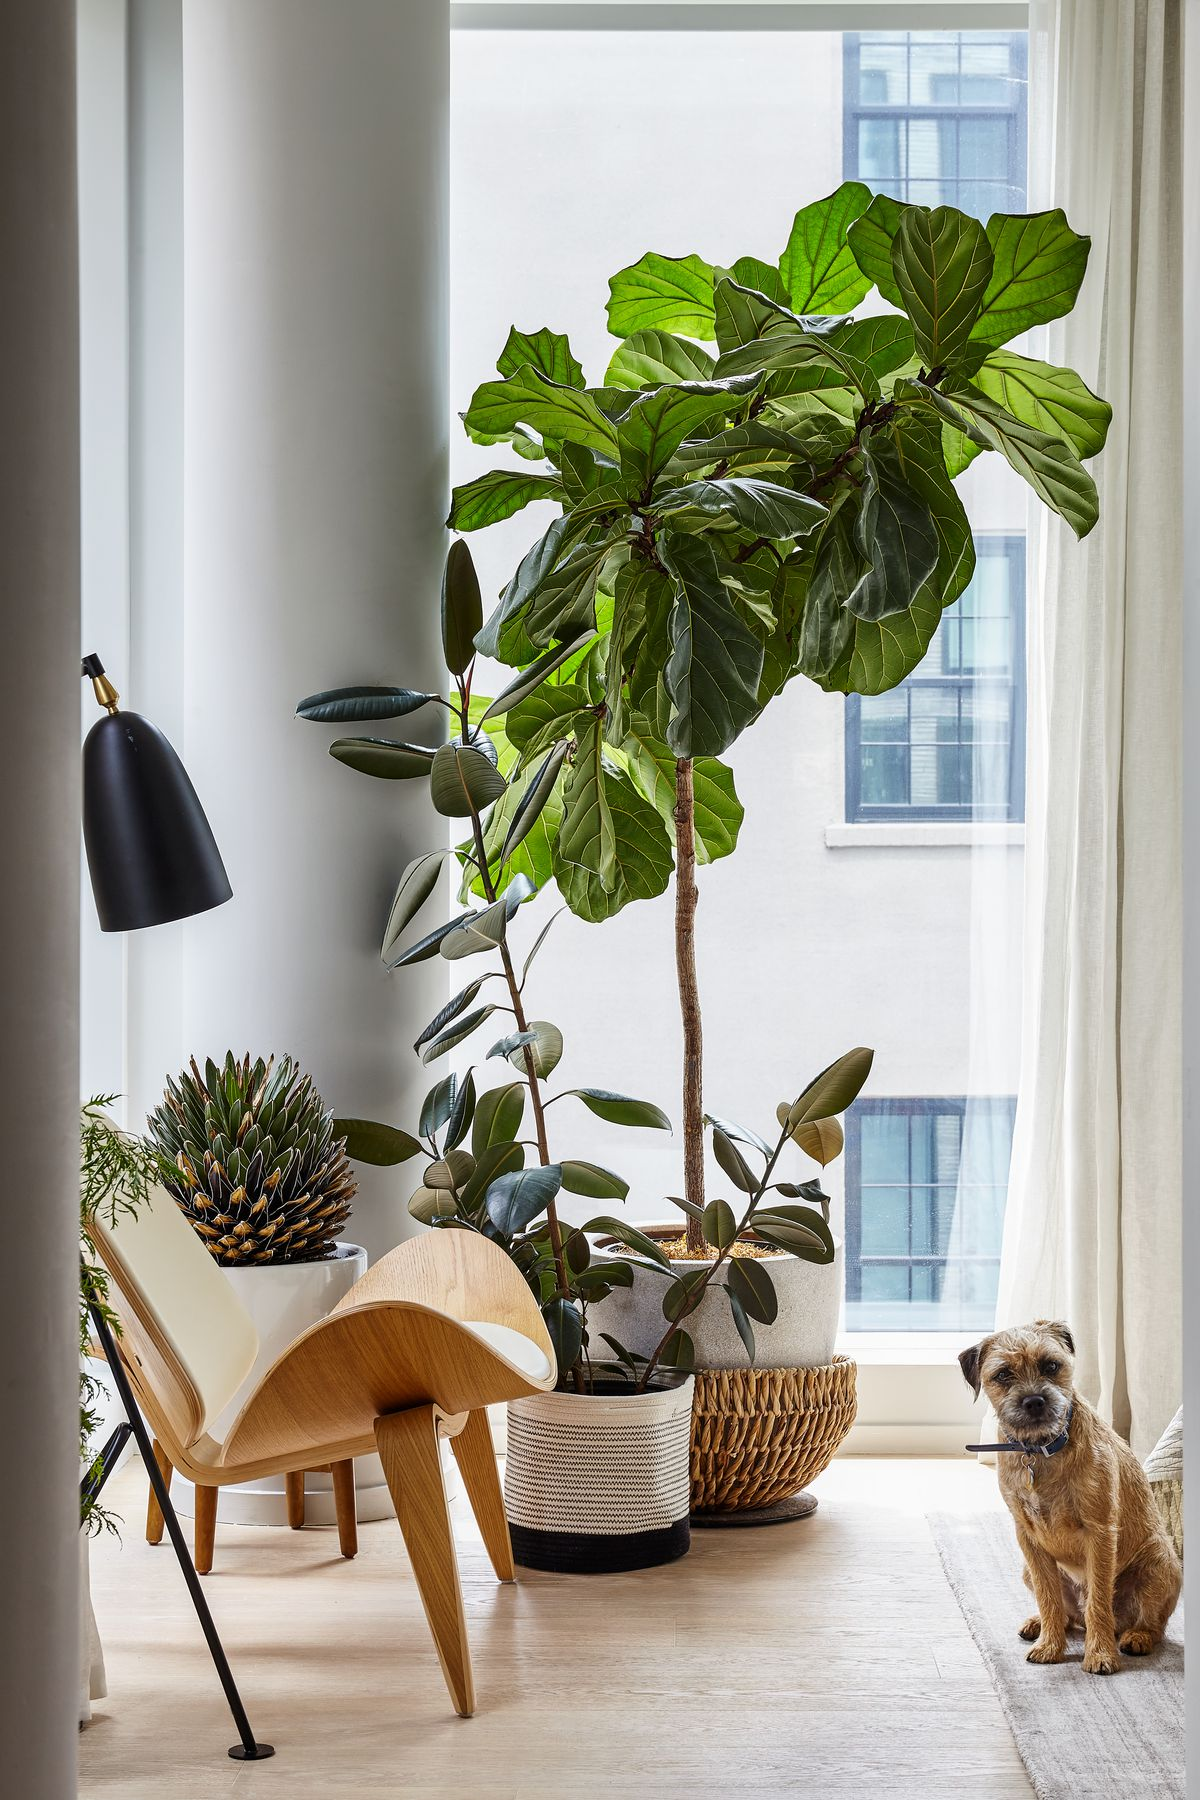 The corner of a room with a floor to ceiling window. In front of the window is a wooden chair and multiple planters with plants. A tan dog sits next to the plants looking towards the camera.